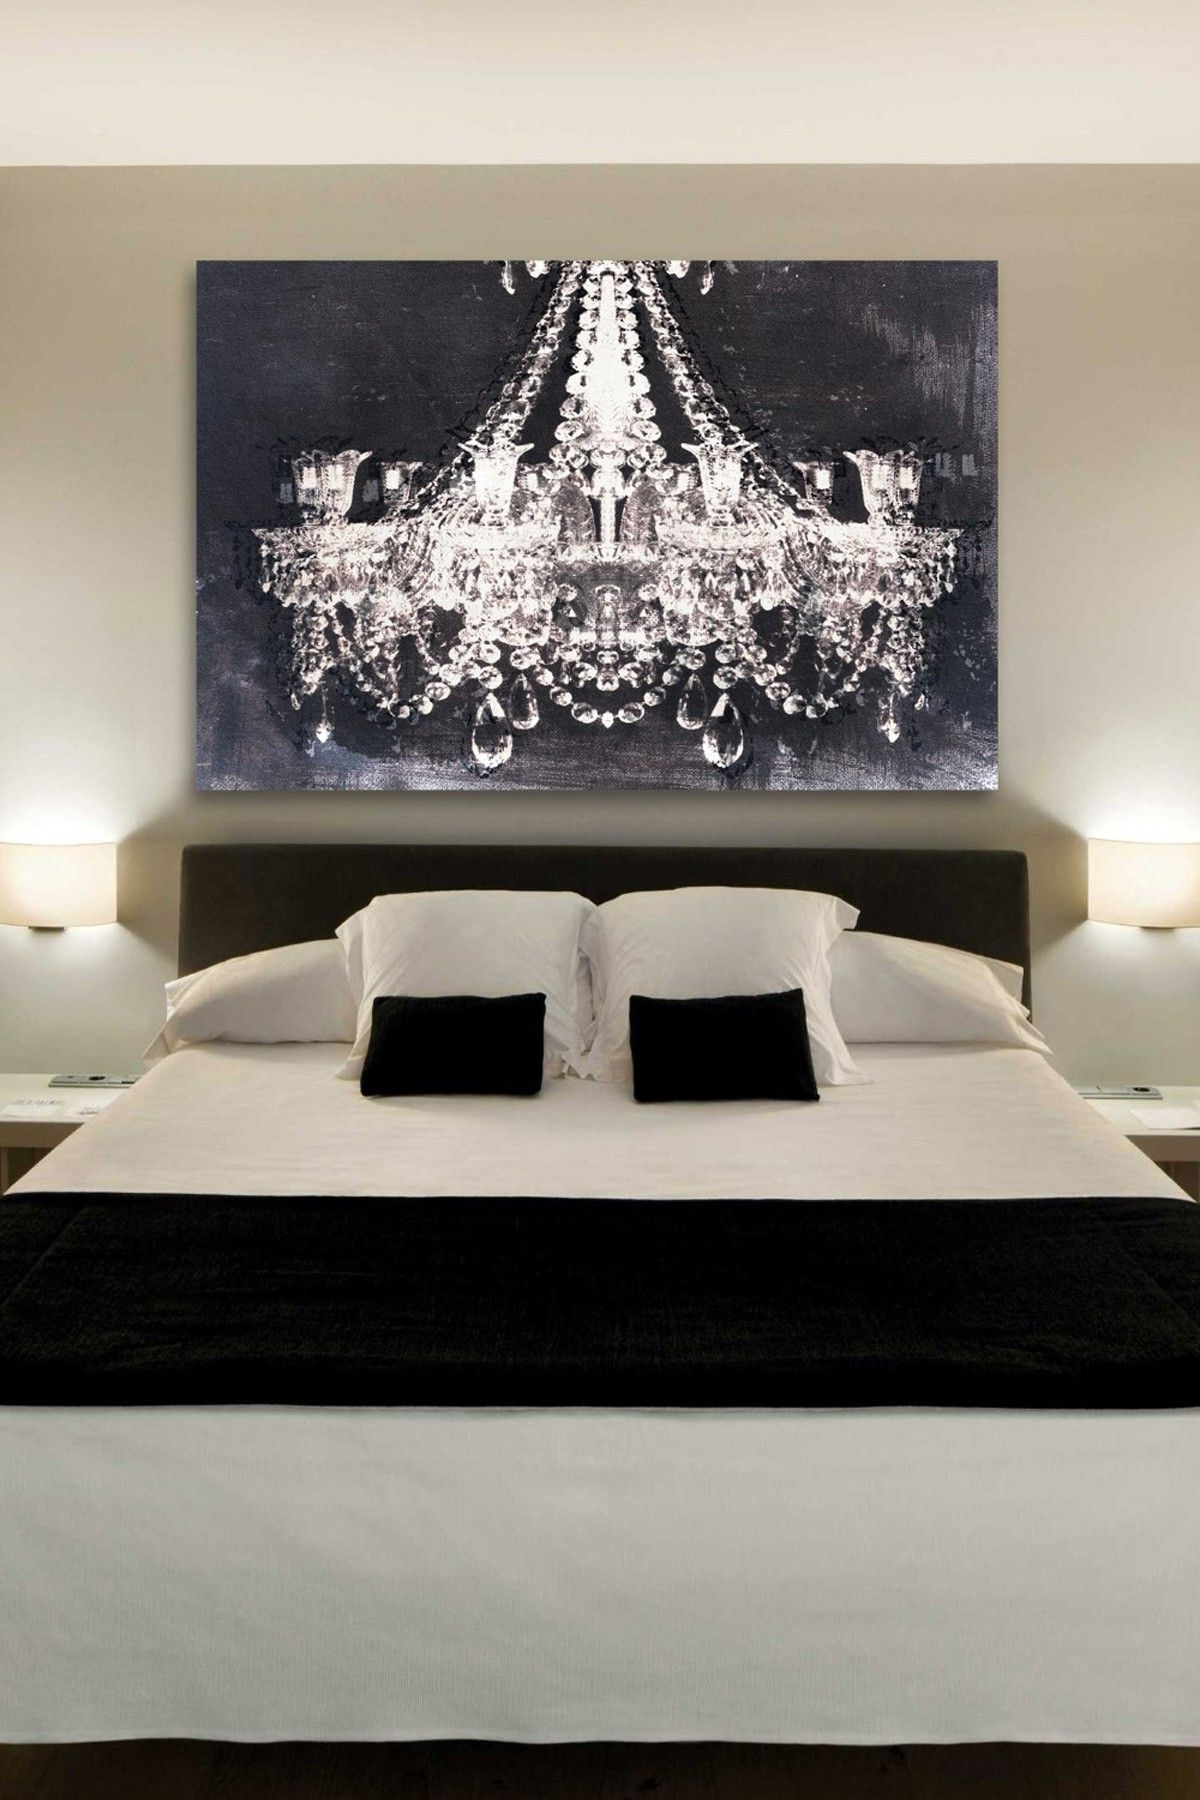 Chandelier Wall Art Within 2018 The Chandelier Art Gives Such A Romantic Touch To This Bedroom (View 12 of 20)